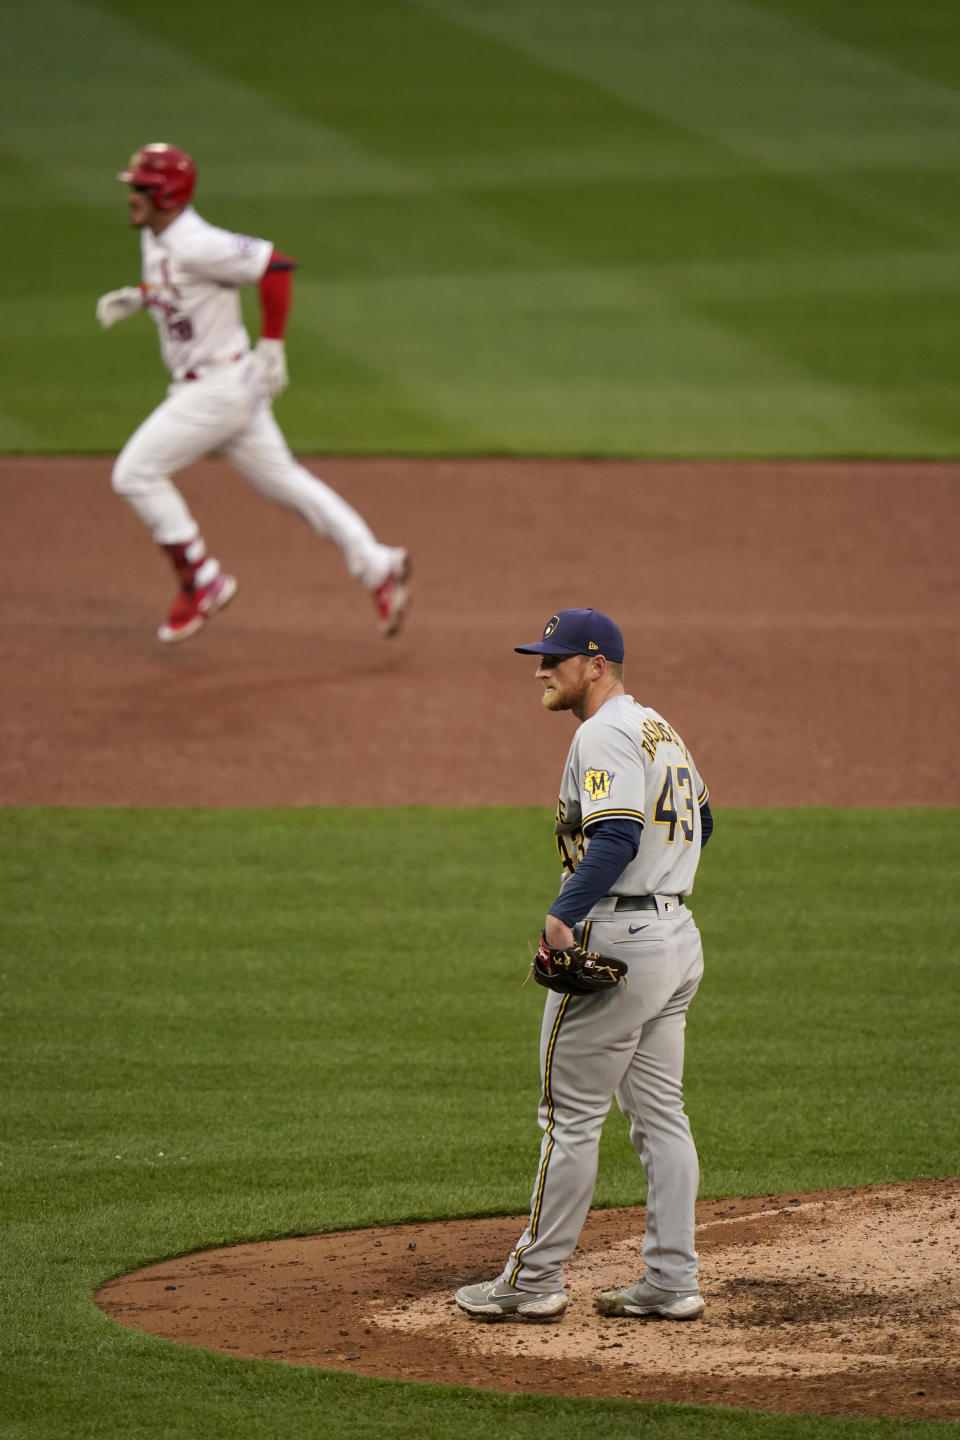 St. Louis Cardinals' Nolan Arenado, top, rounds the bases after hitting a two-run home run off Milwaukee Brewers relief pitcher Drew Rasmussen (43) during the eighth inning of a baseball game Thursday, April 8, 2021, in St. Louis. (AP Photo/Jeff Roberson)